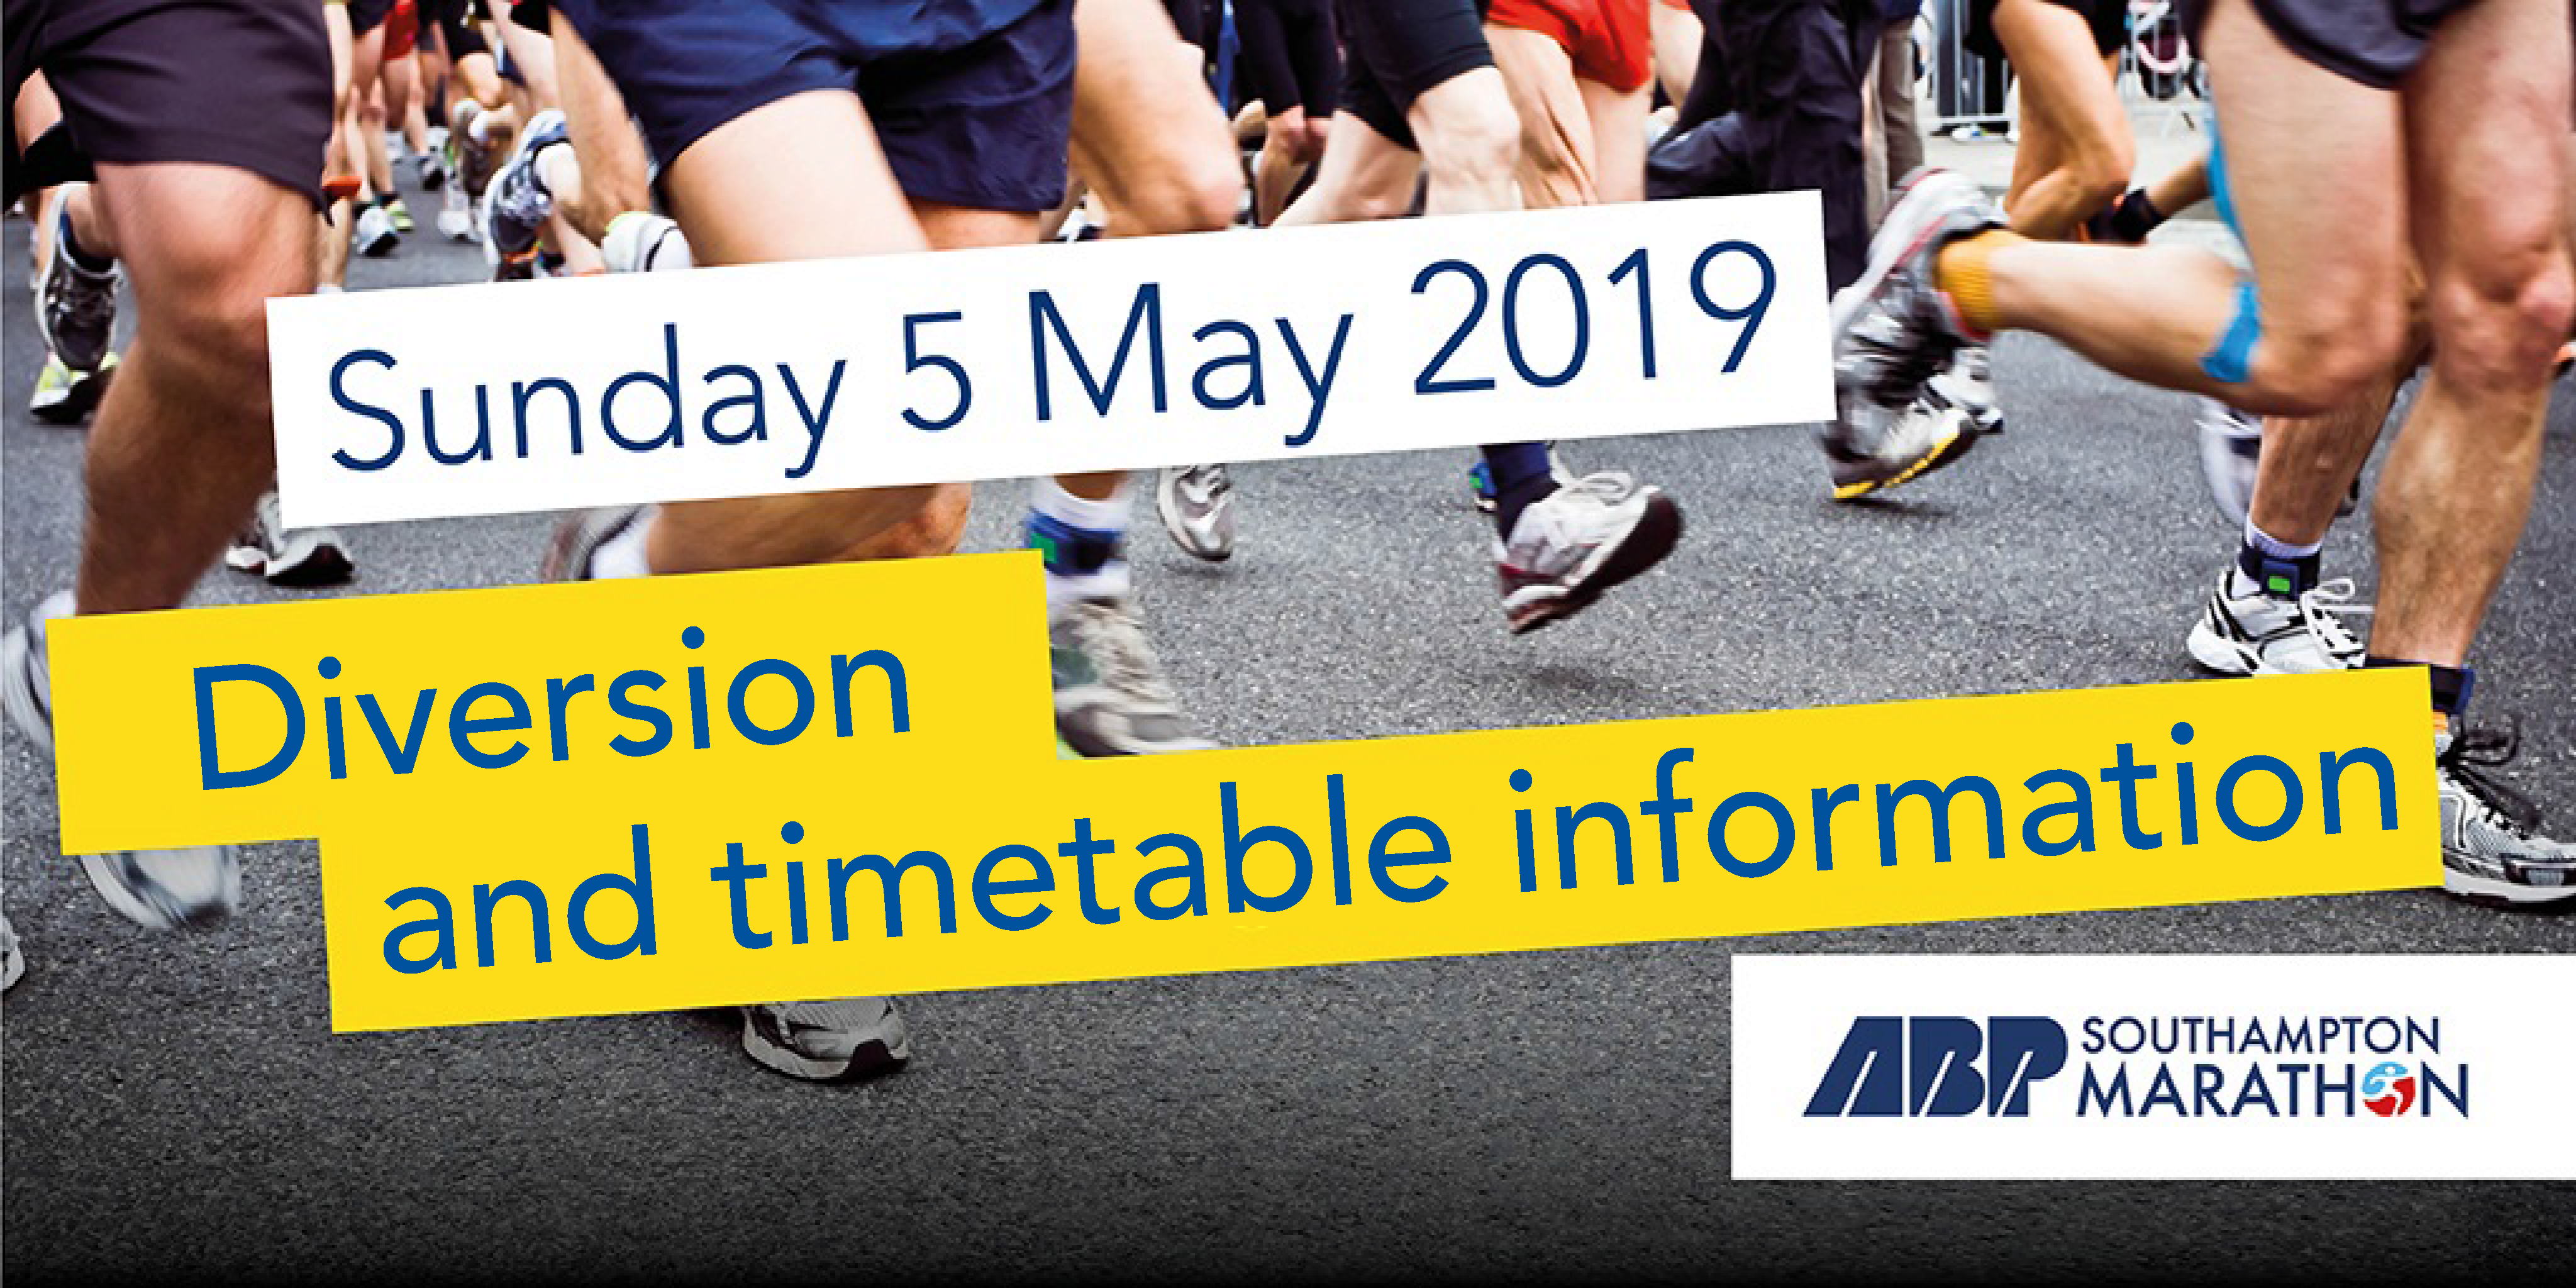 Legs and shoes of people can be seen mid-run in the background, while in a white box it says 'Sunday 5th May', and in a yellow box it says 'Diversion and timetable information'. The ABP Southampton log is in the lower right corner.